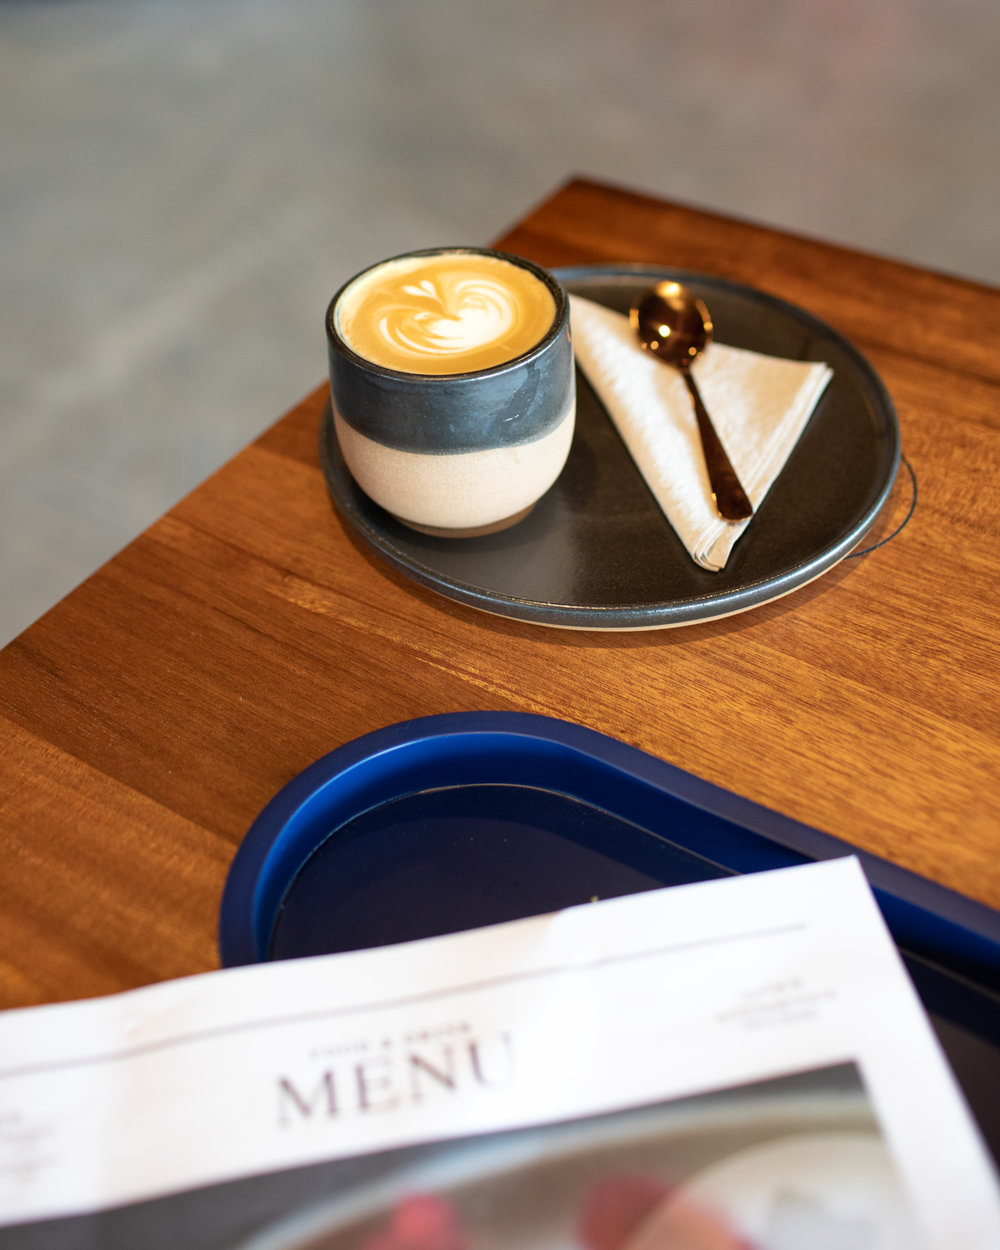 42462dc27f0c A cappuccino at Cold Brew Bar. The ceramic cups at Cold Brew Bar are from